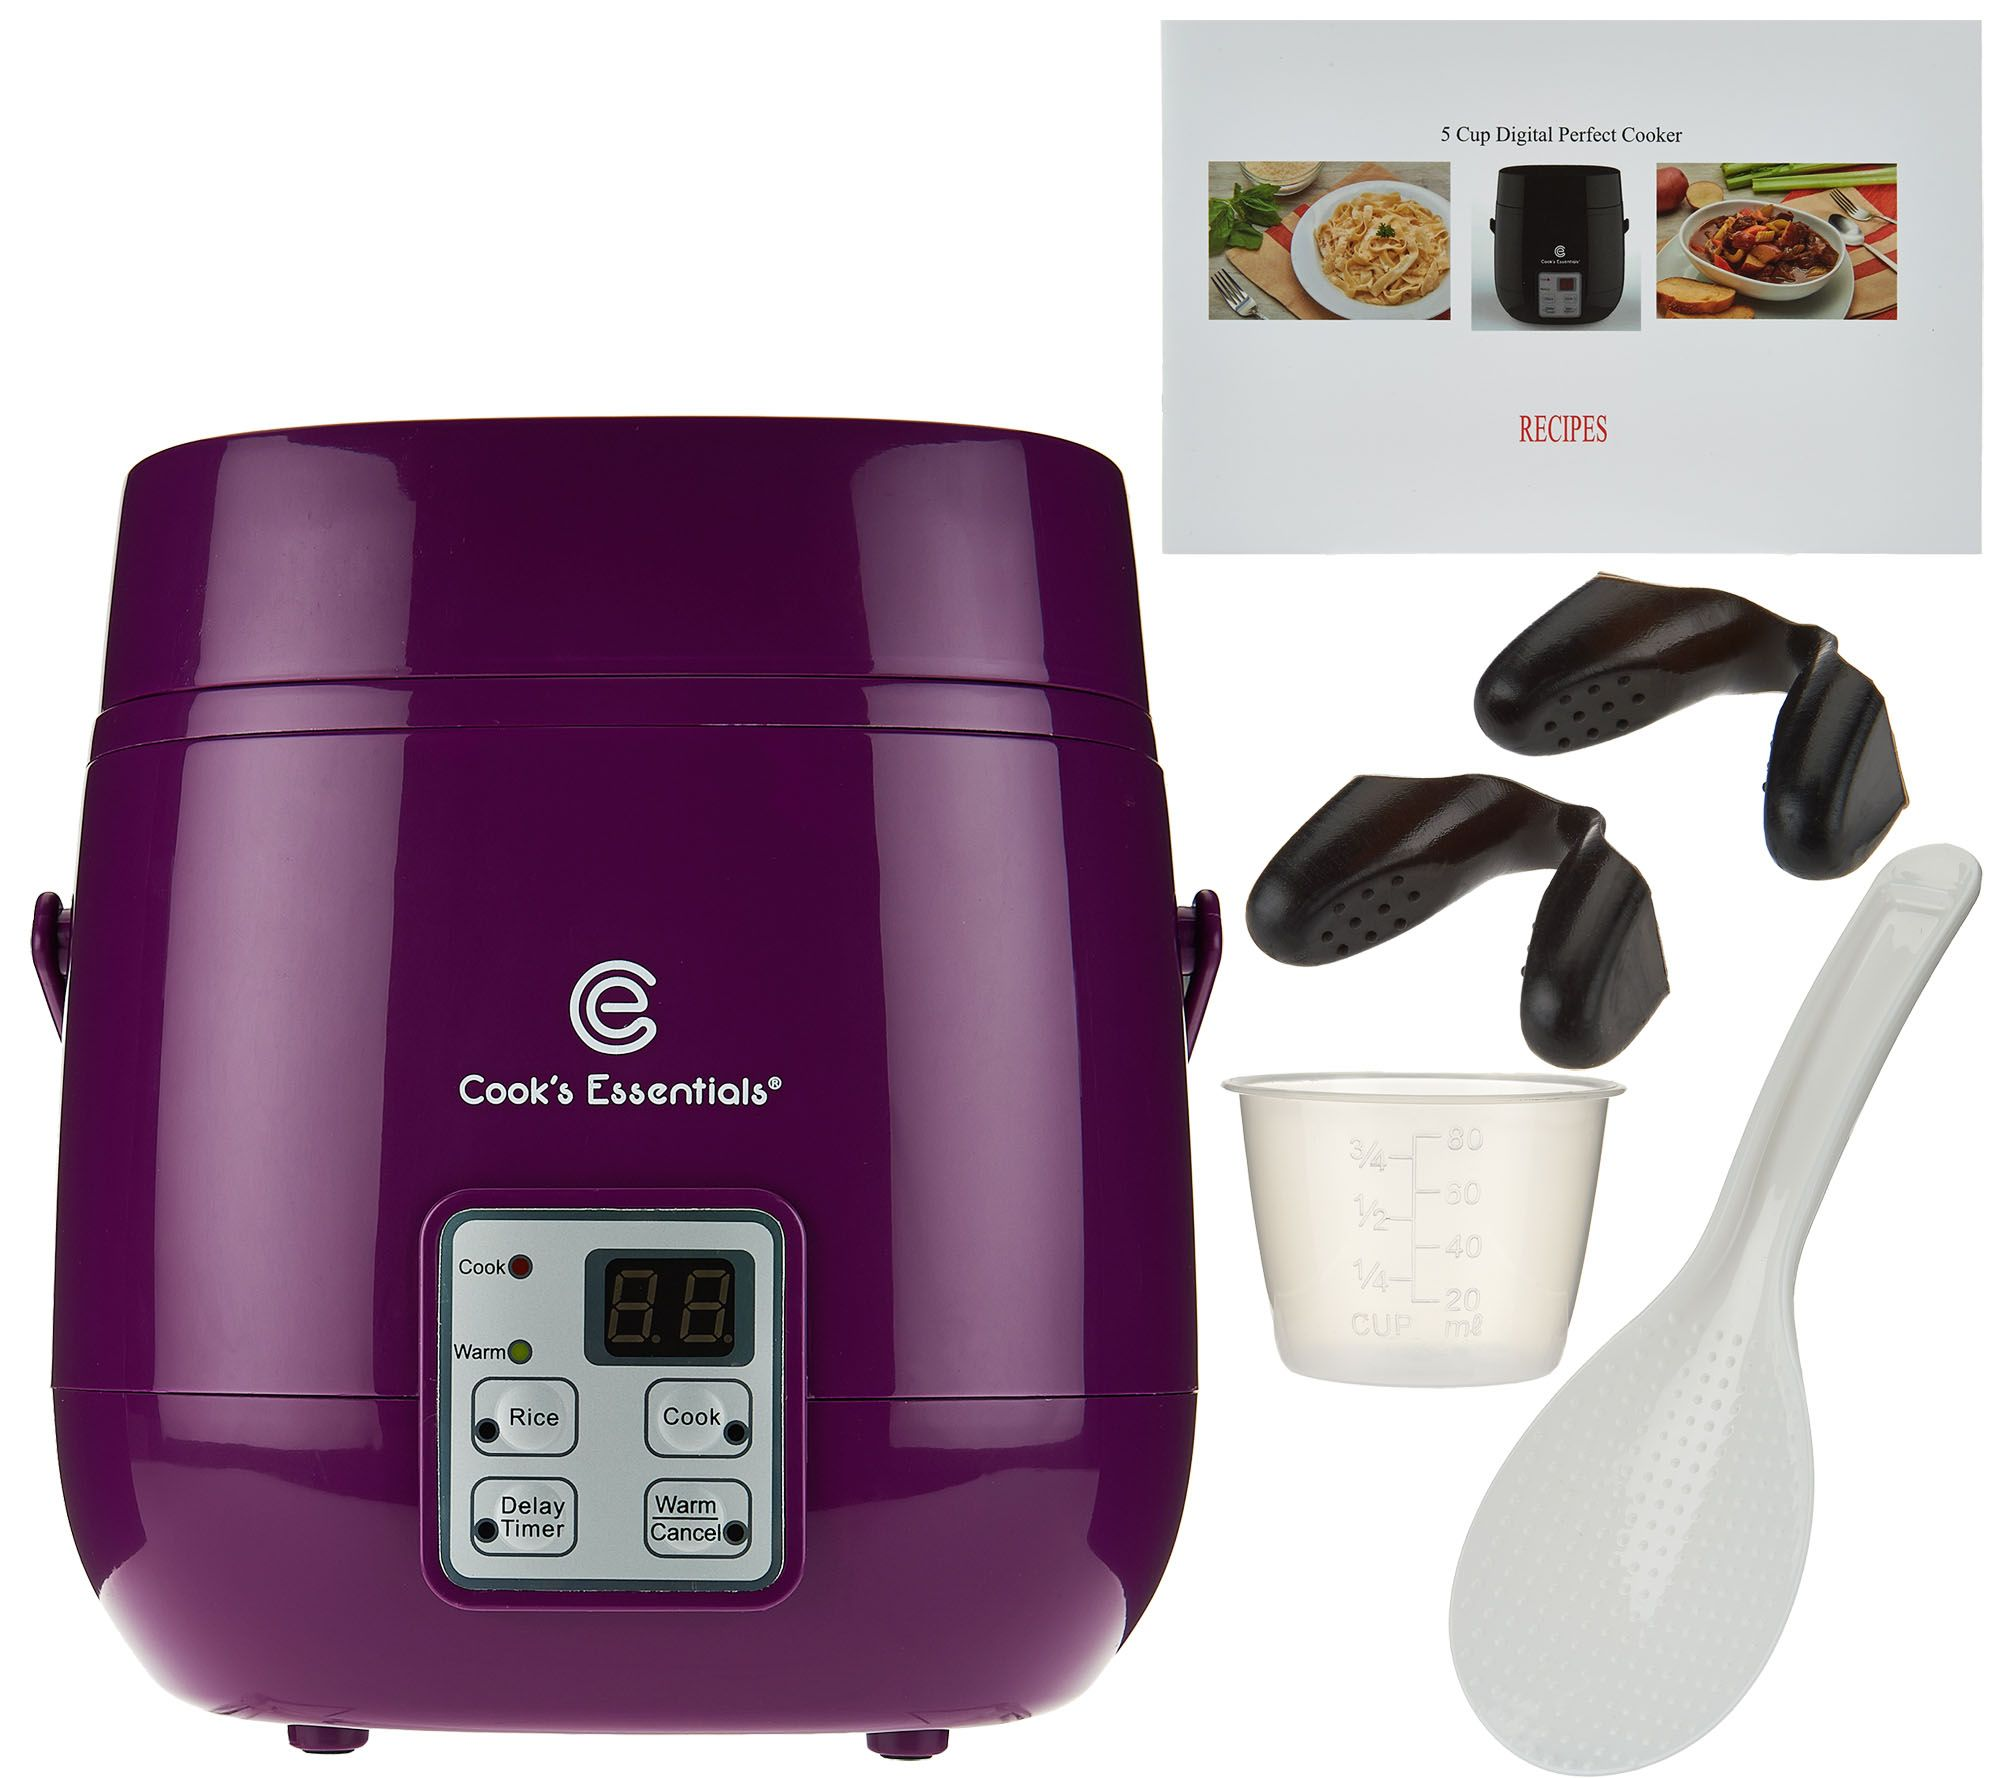 Cooks Essentials 5 Cup Digital Perfect Cooker W Recipes Page 1